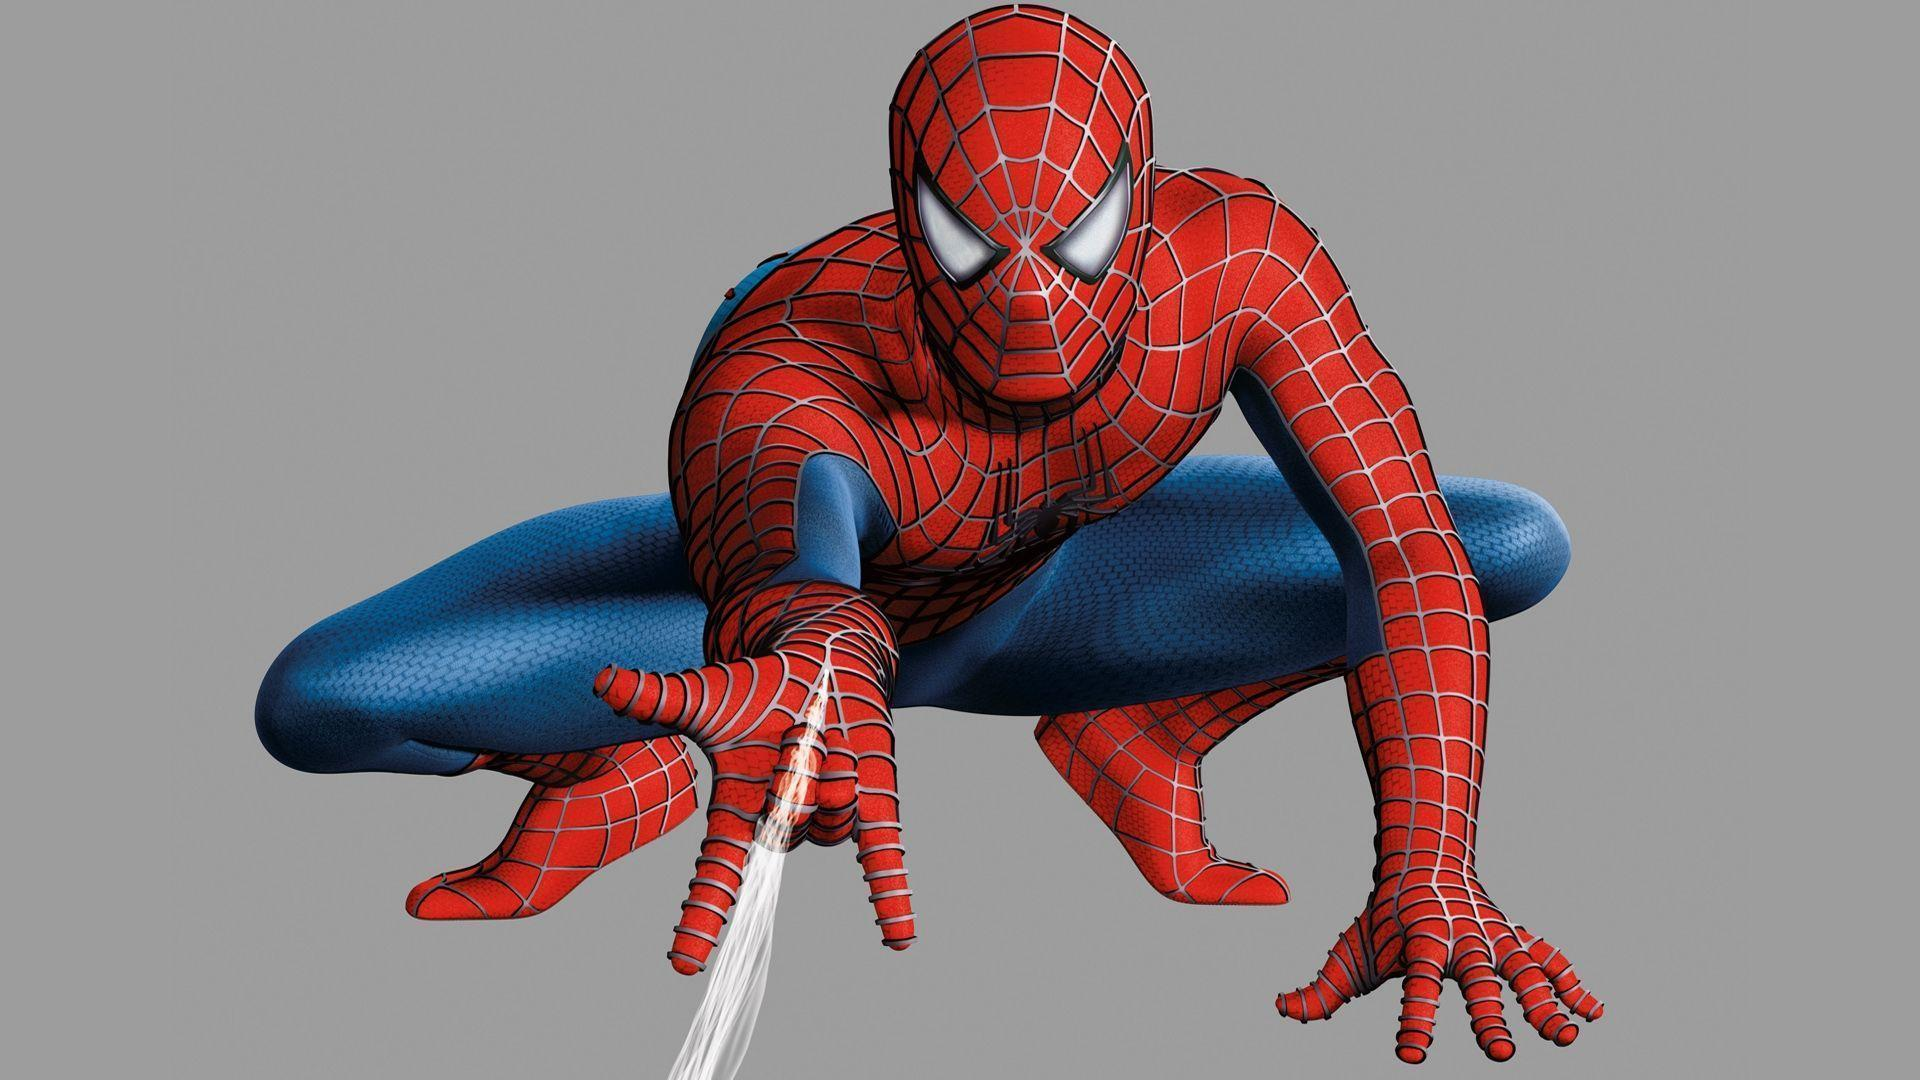 Spider man wallpapers hd wallpaper cave - Images spiderman ...